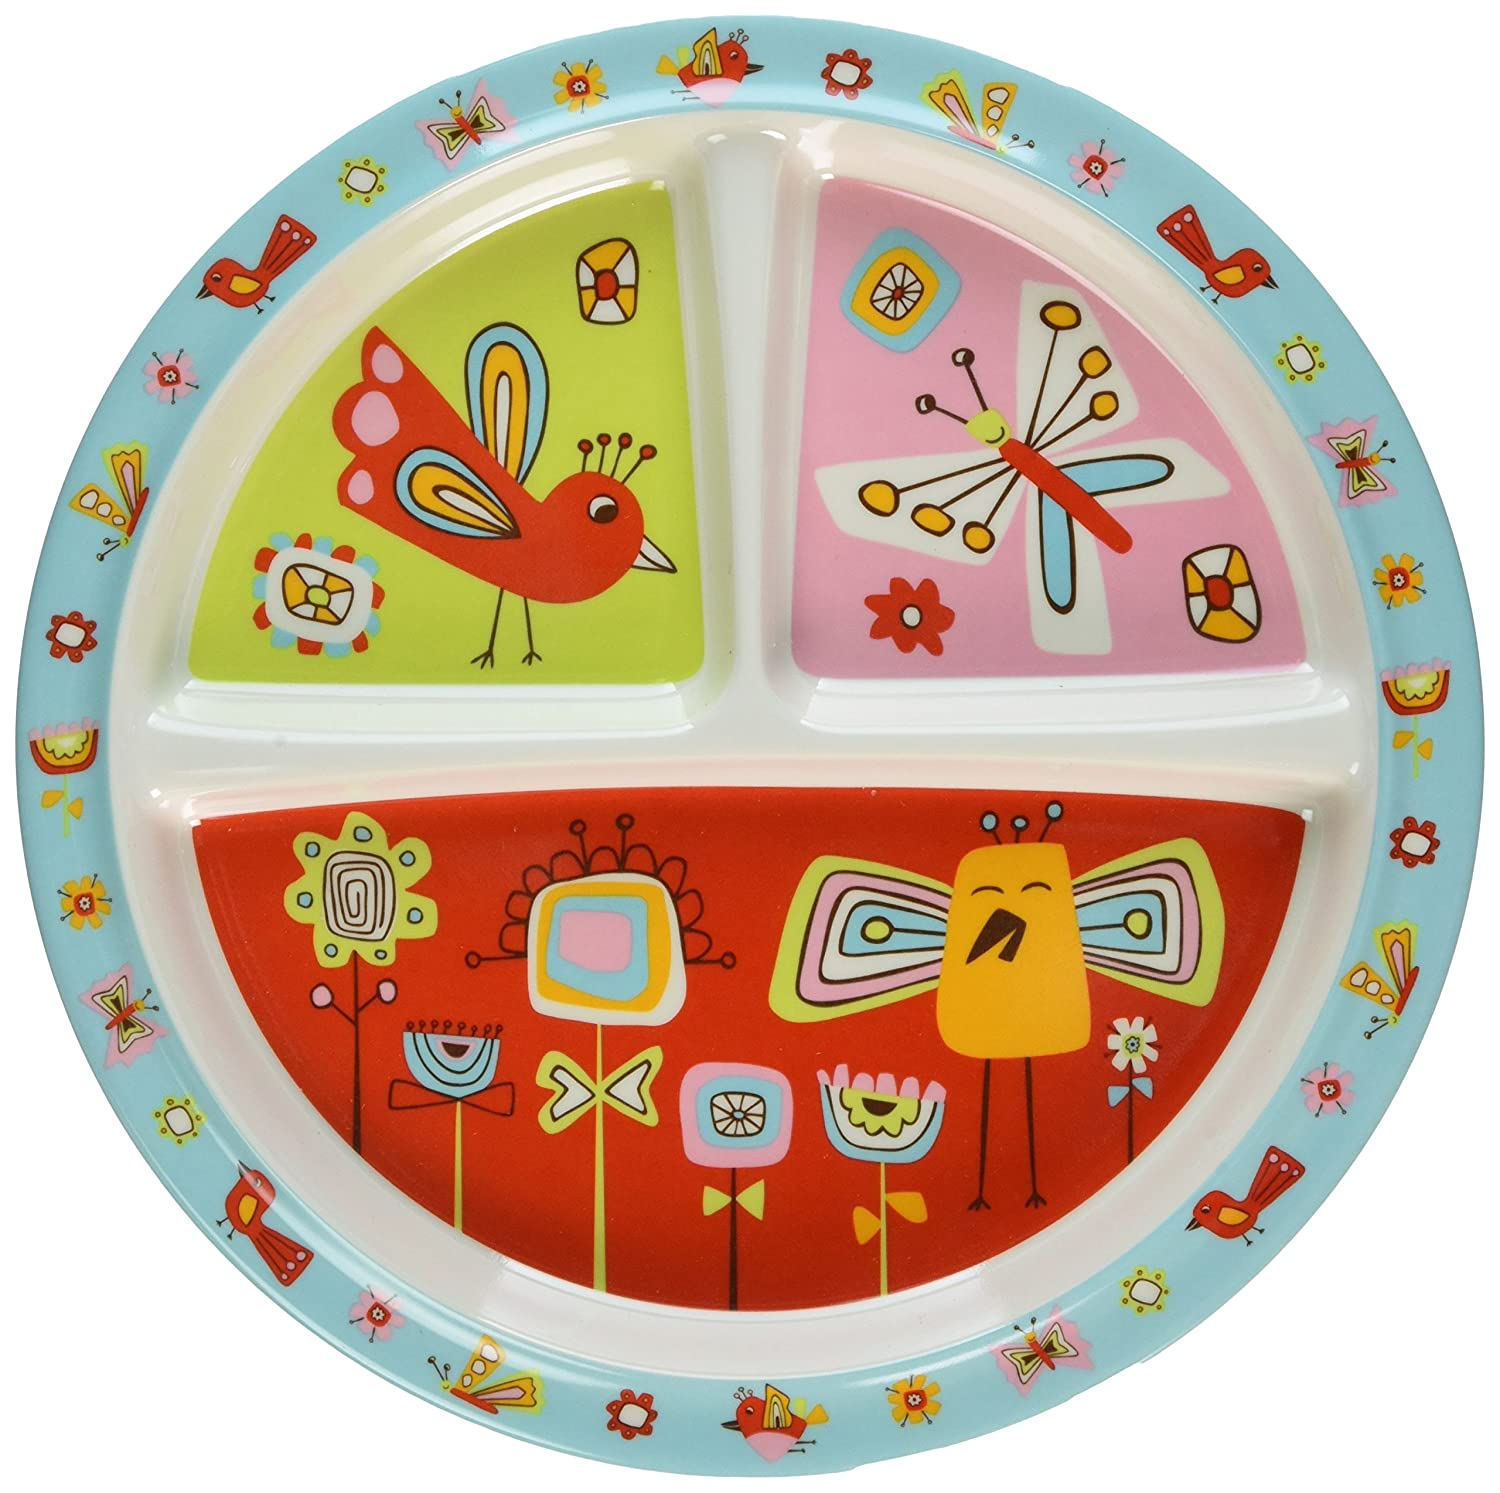 Sugarbooger Divided Suction Plate, Birds & Butterflies